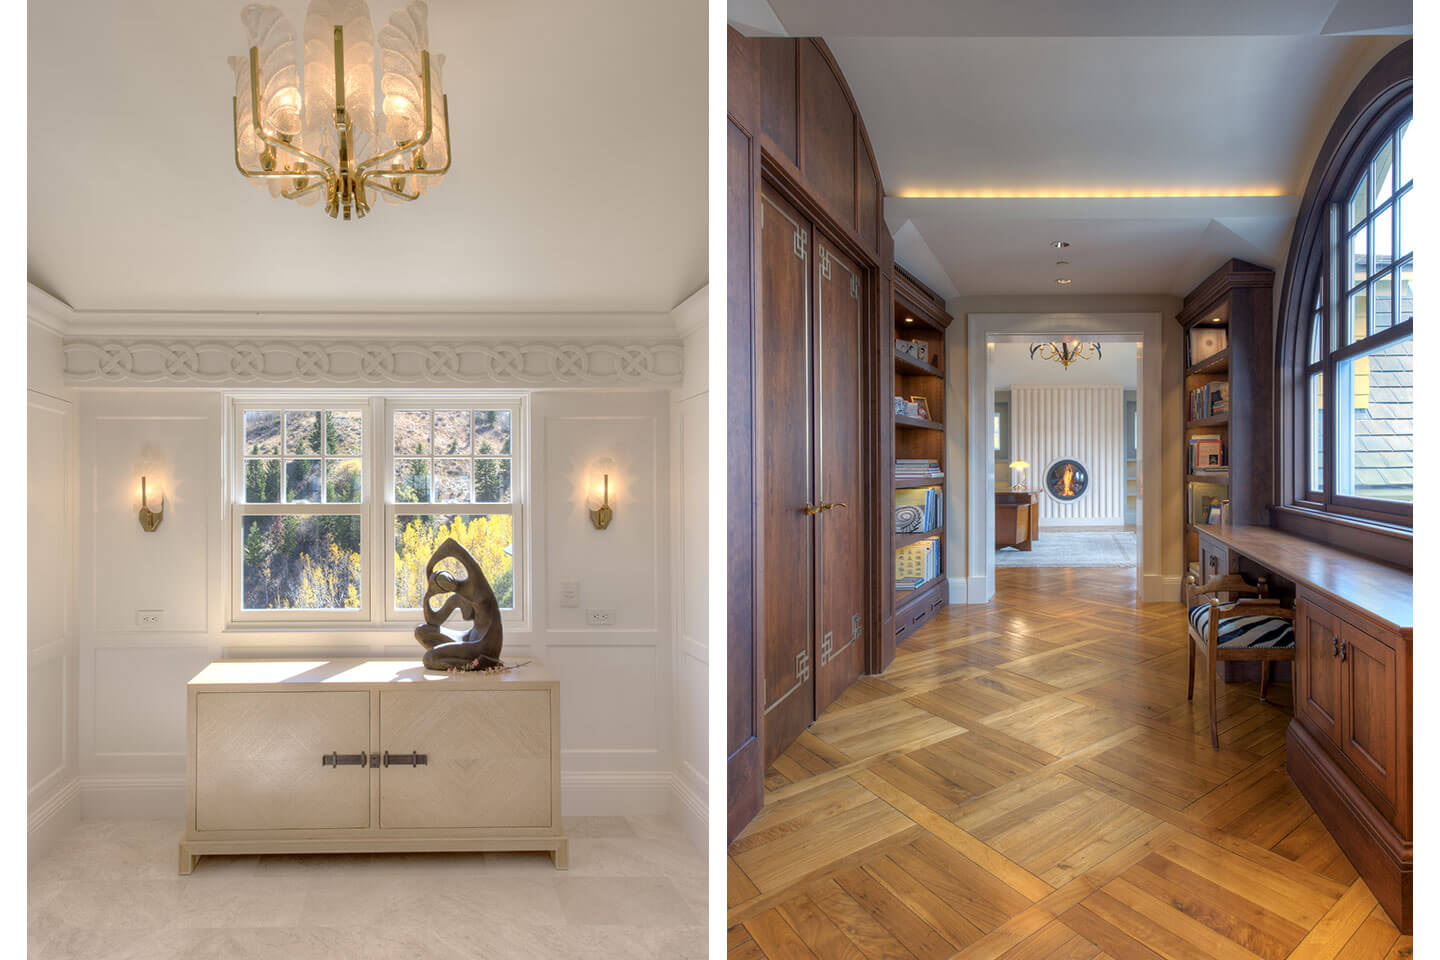 Entryway with plaster mouldings, and library with custom-designed wood floor